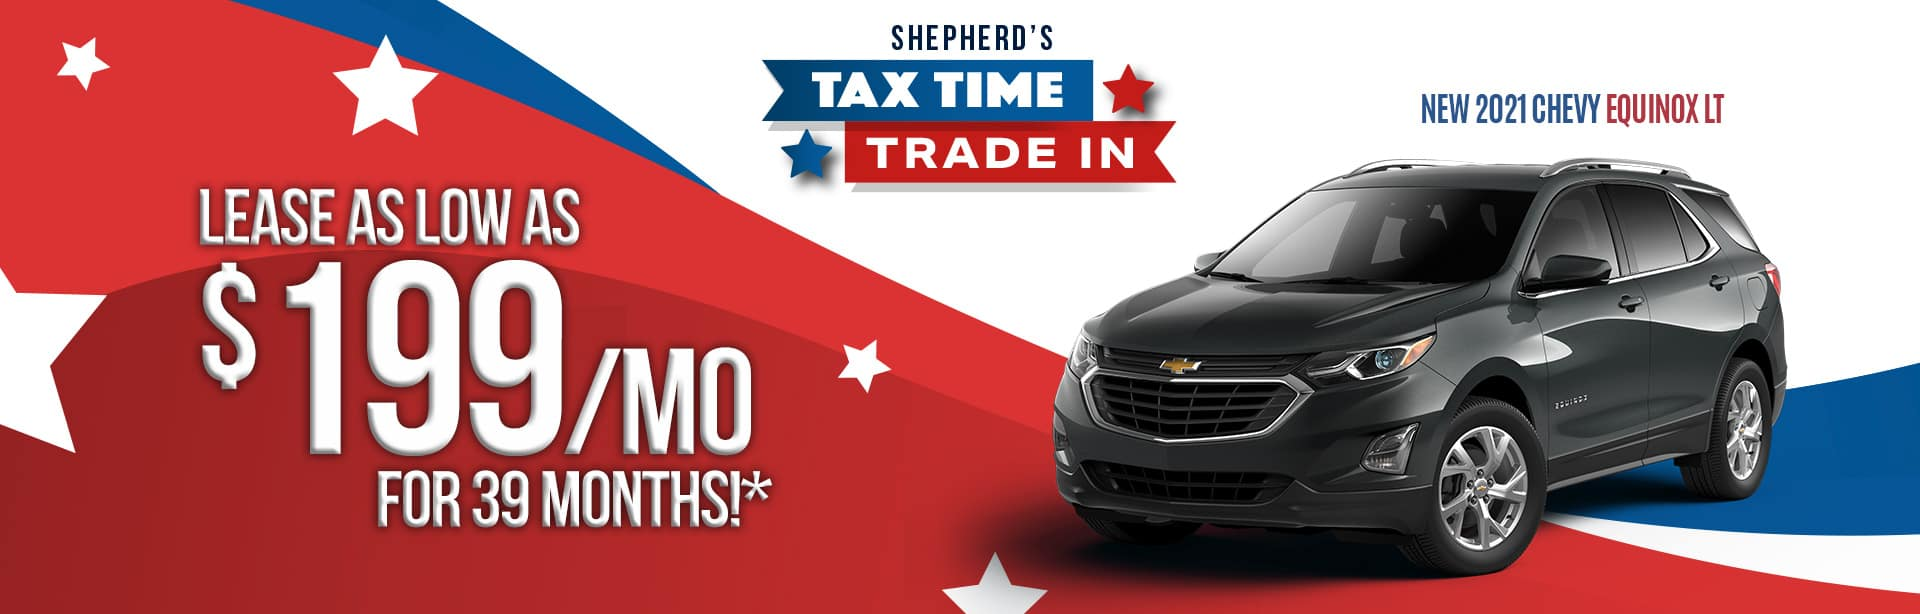 Best deal on a 2021 Chevy Equinox near North Manchester IN